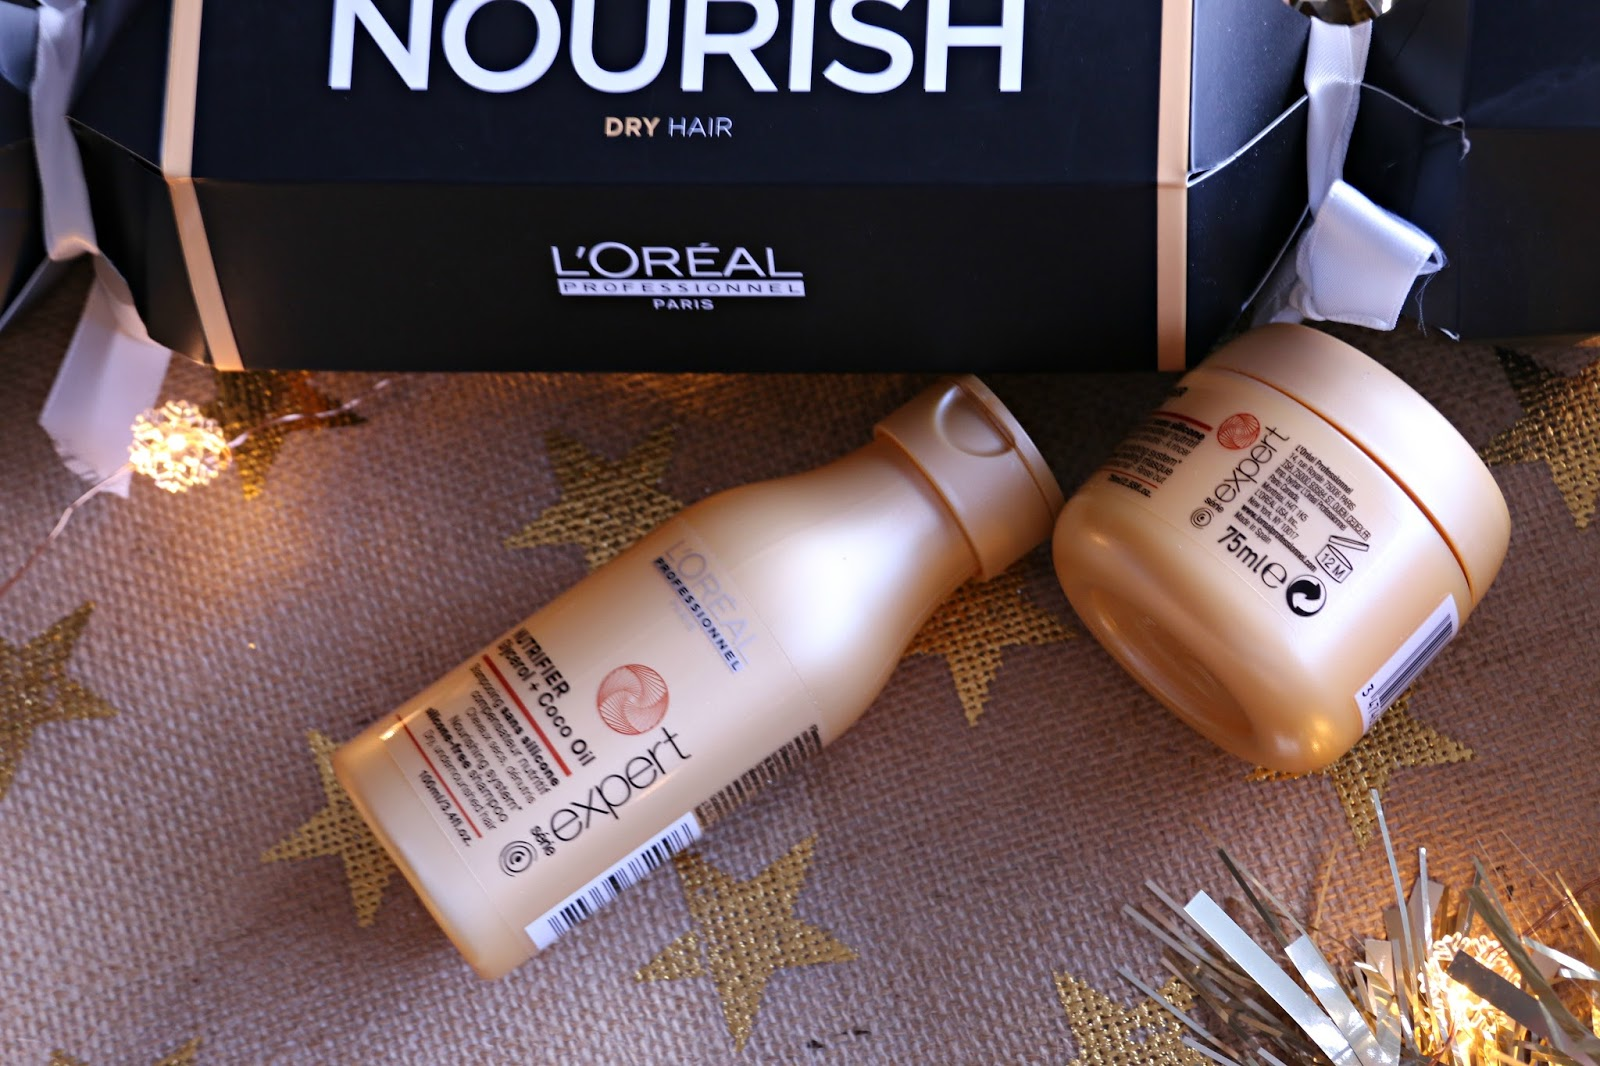 L'Oreal Professionnel Cracker Série Expert Nutrifier shampoo and conditioner Image